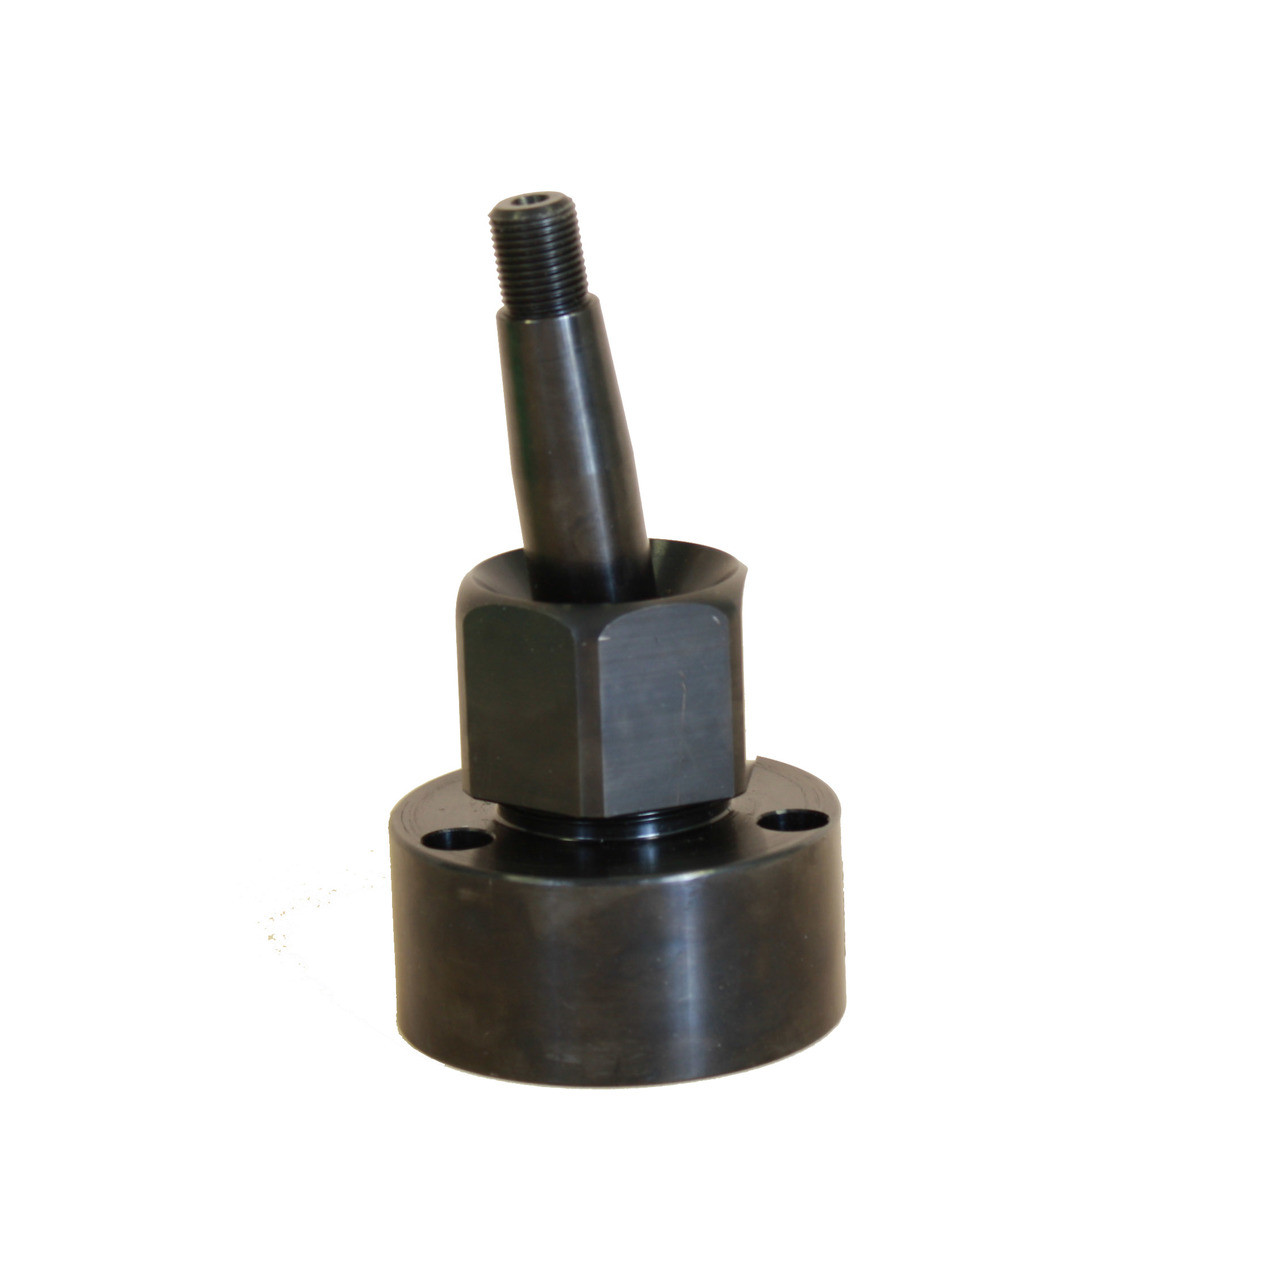 SPINDLE JIG KING PIN BALL JOINT ASSEMBLY